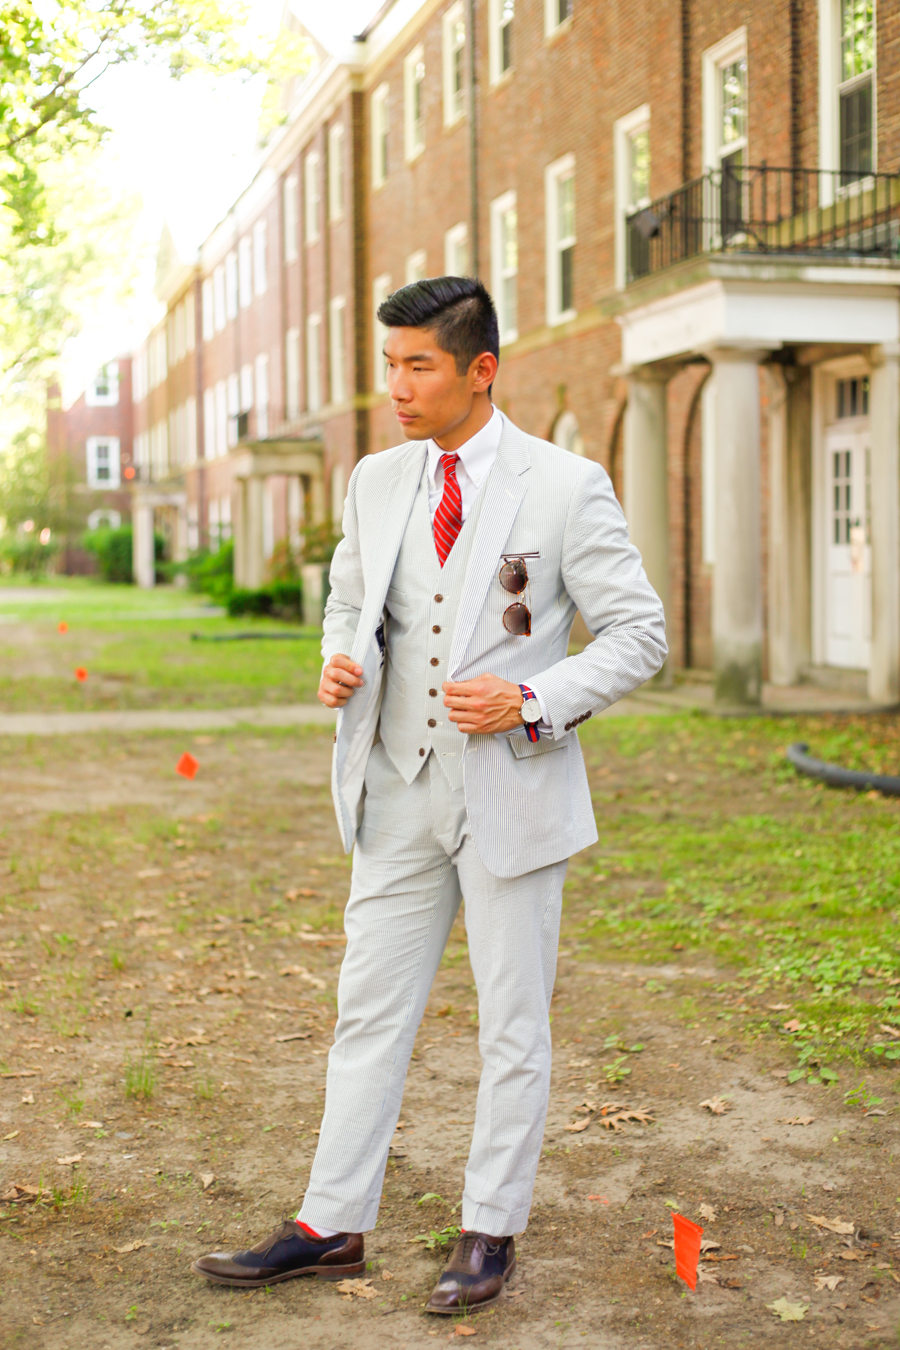 Jazz Age Lawn Party Levitate Style | 1920's Men's Fashion feat. J.Crew Factory Seersucker Suit and Striped Tie, Menswear, Rolls Royce, St Germain, Vintage